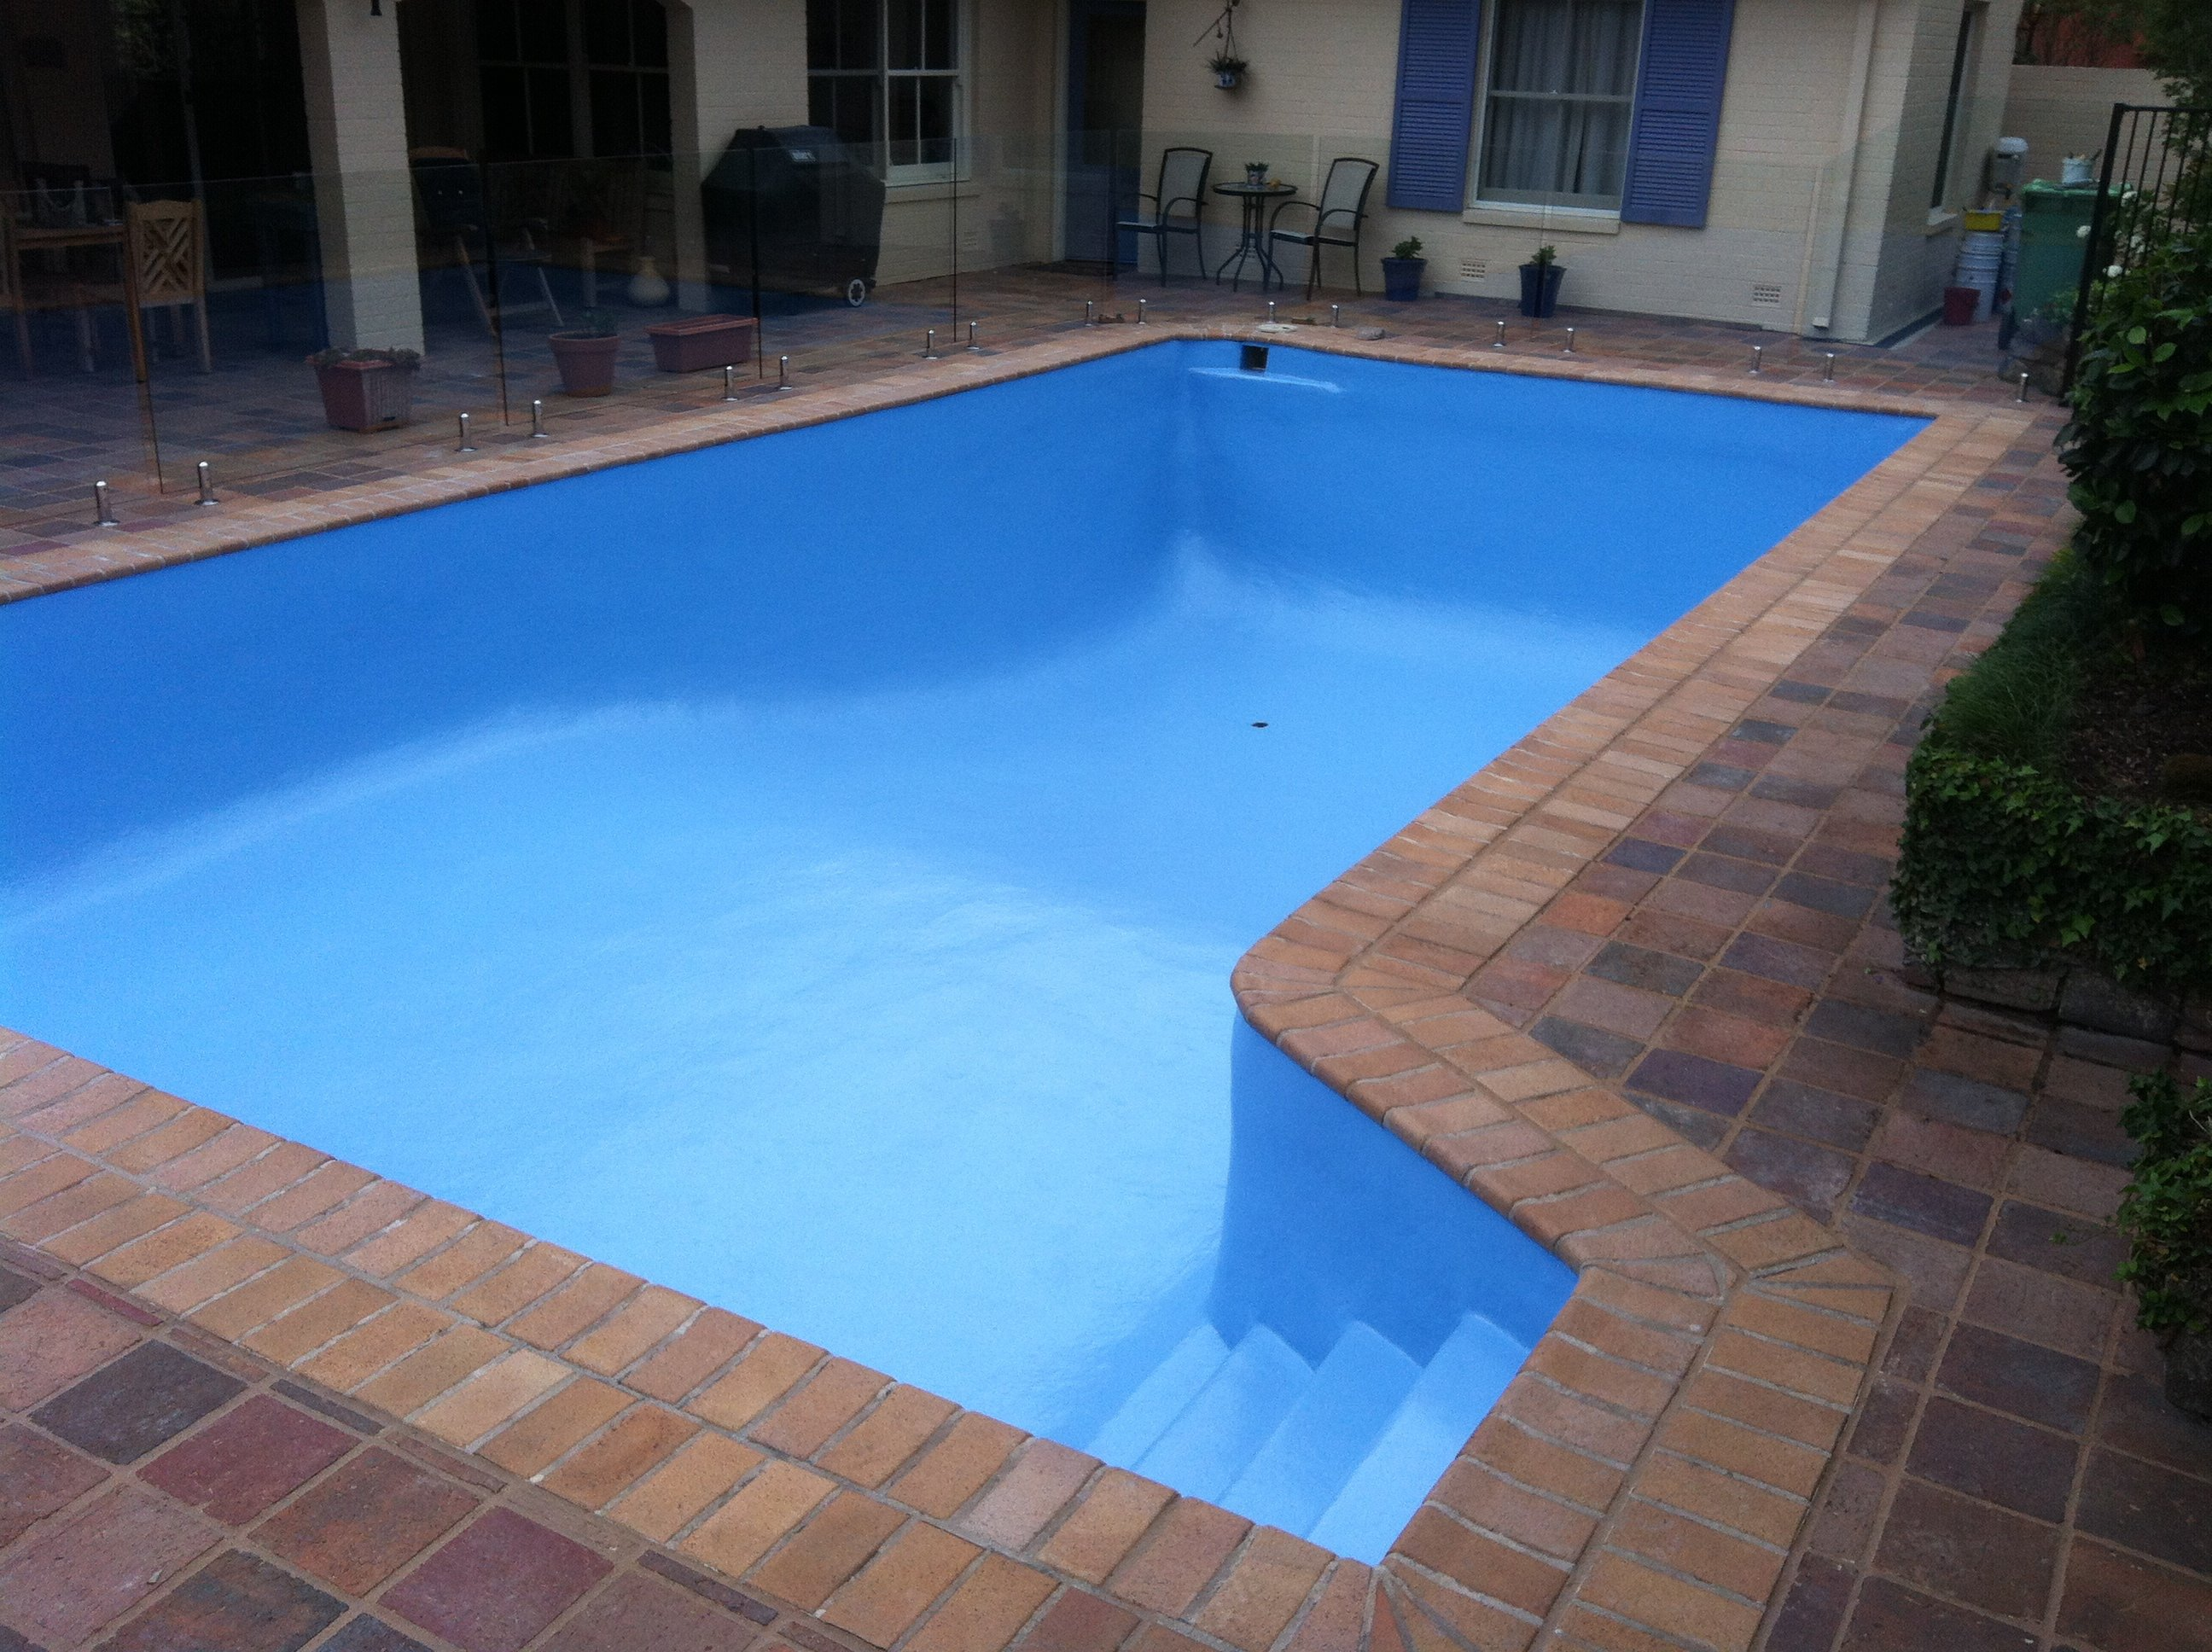 Completed restoration work on pool